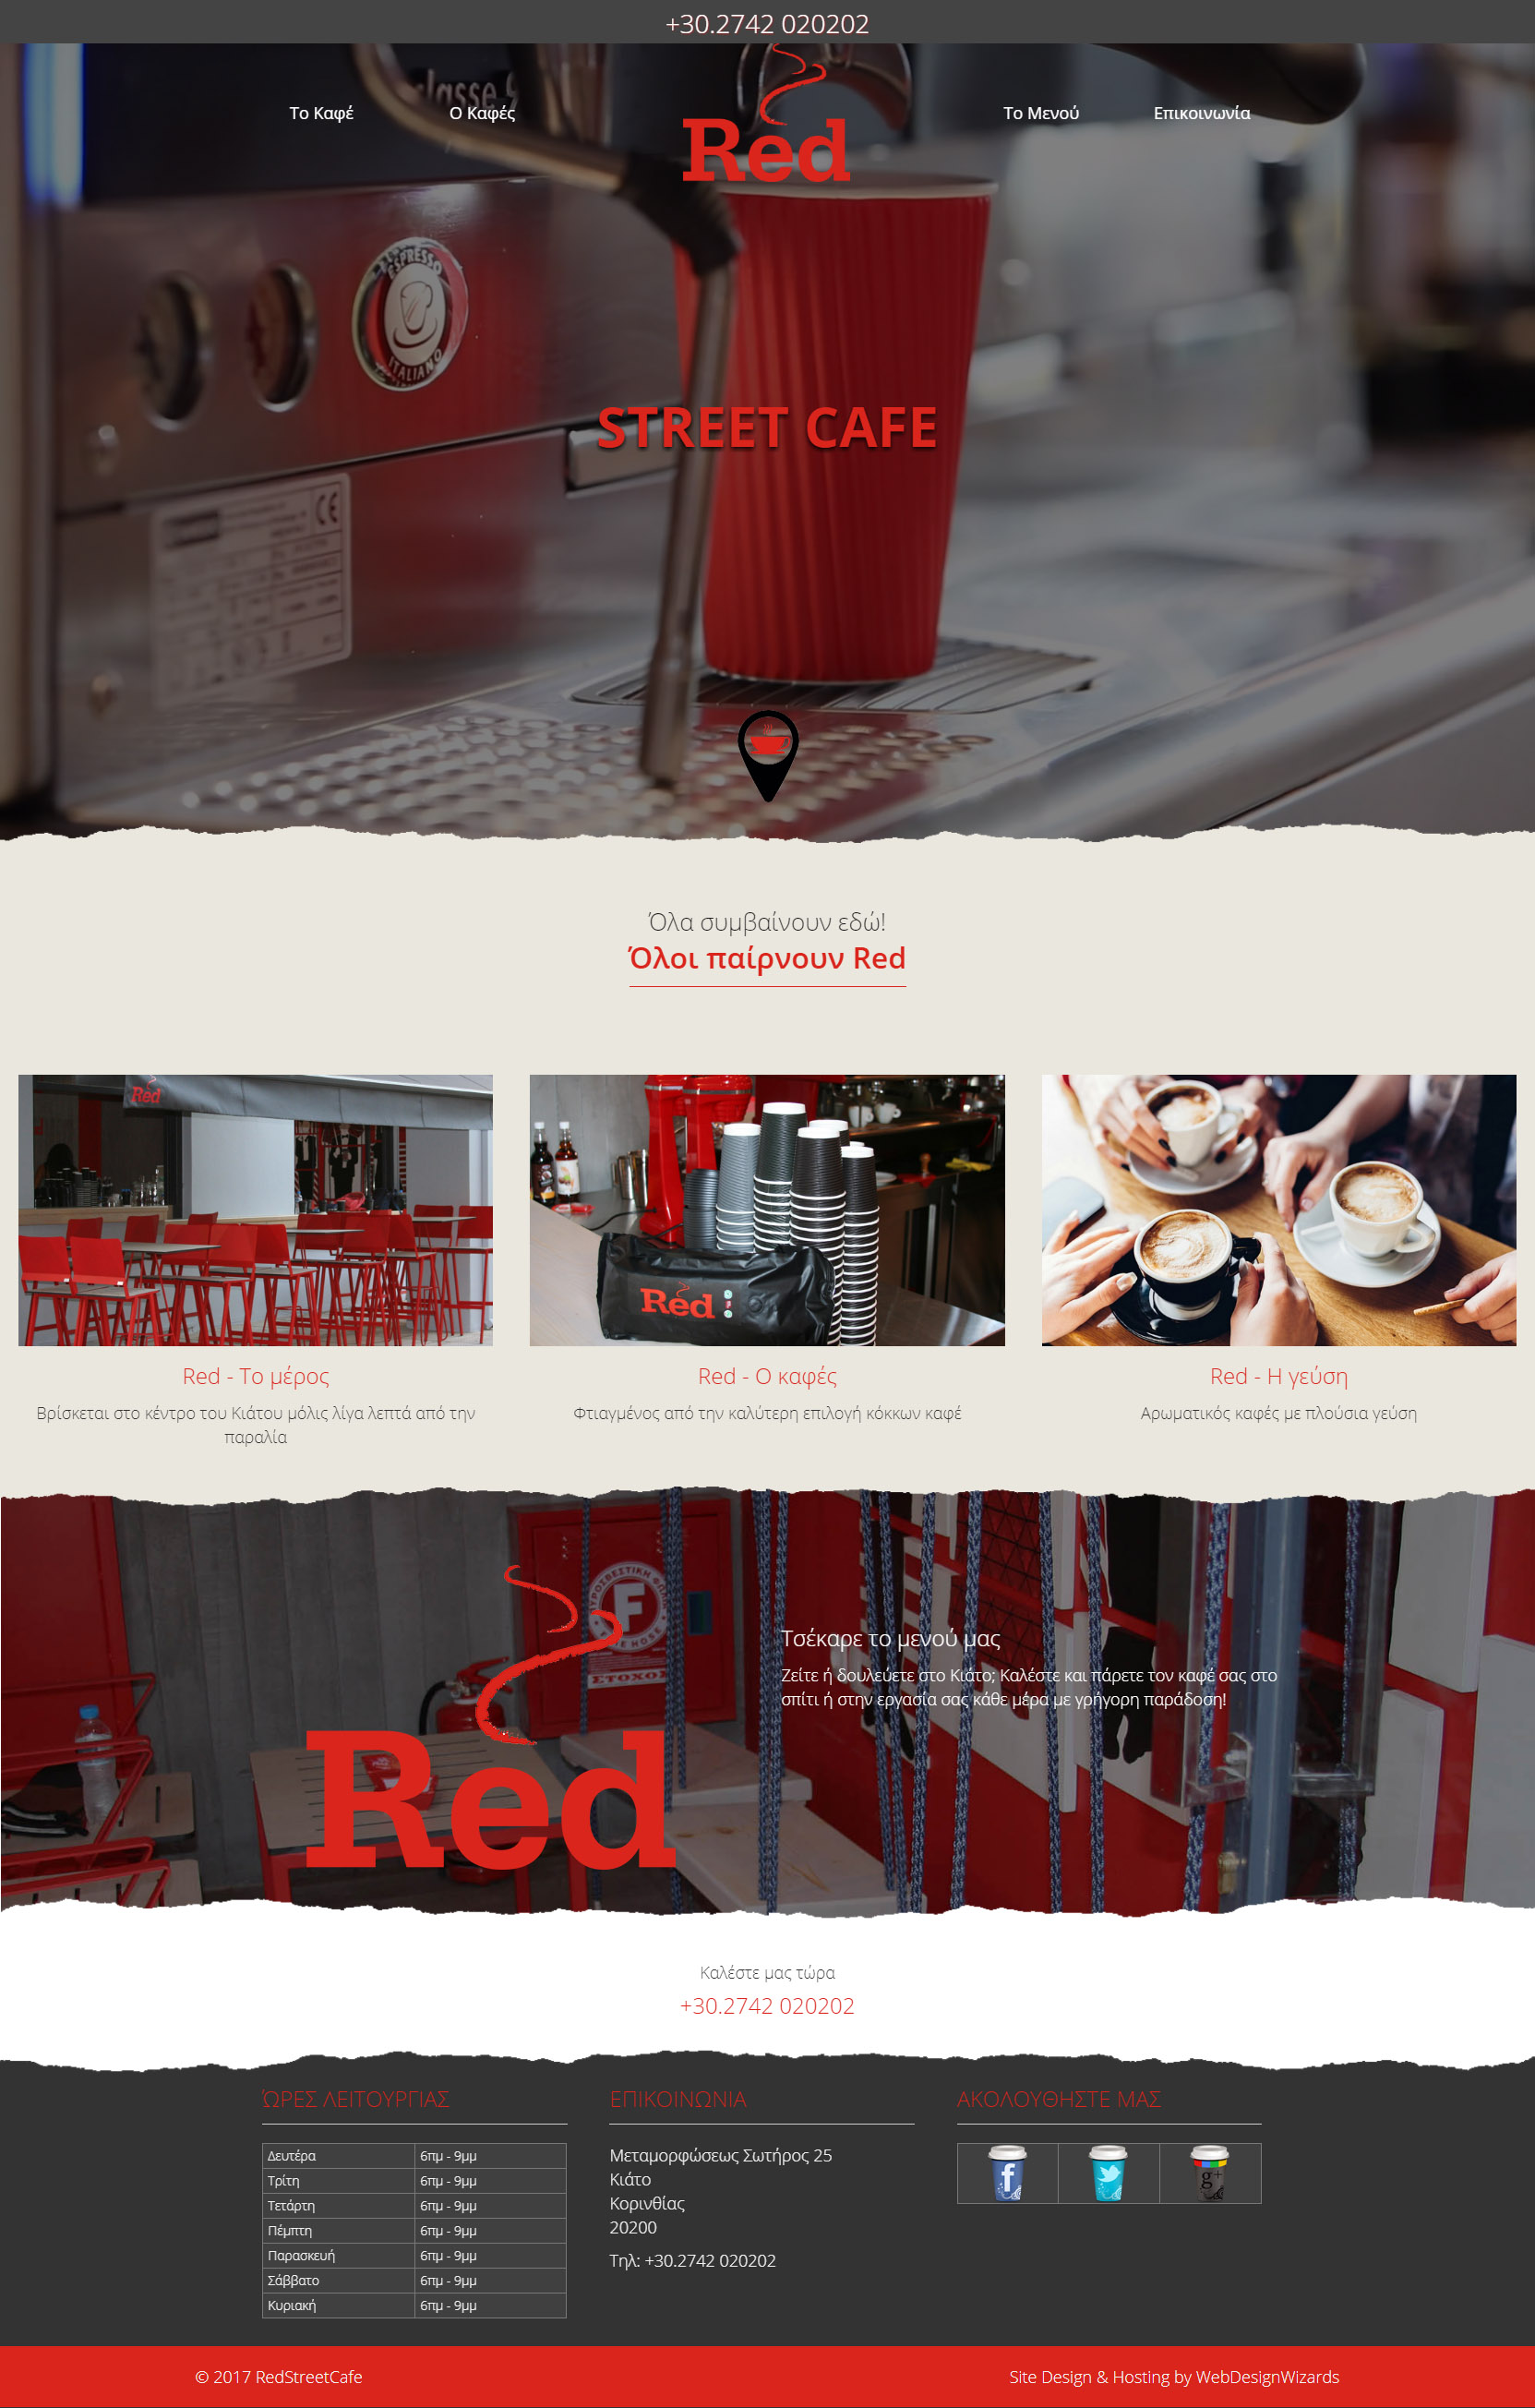 red-street-cafe